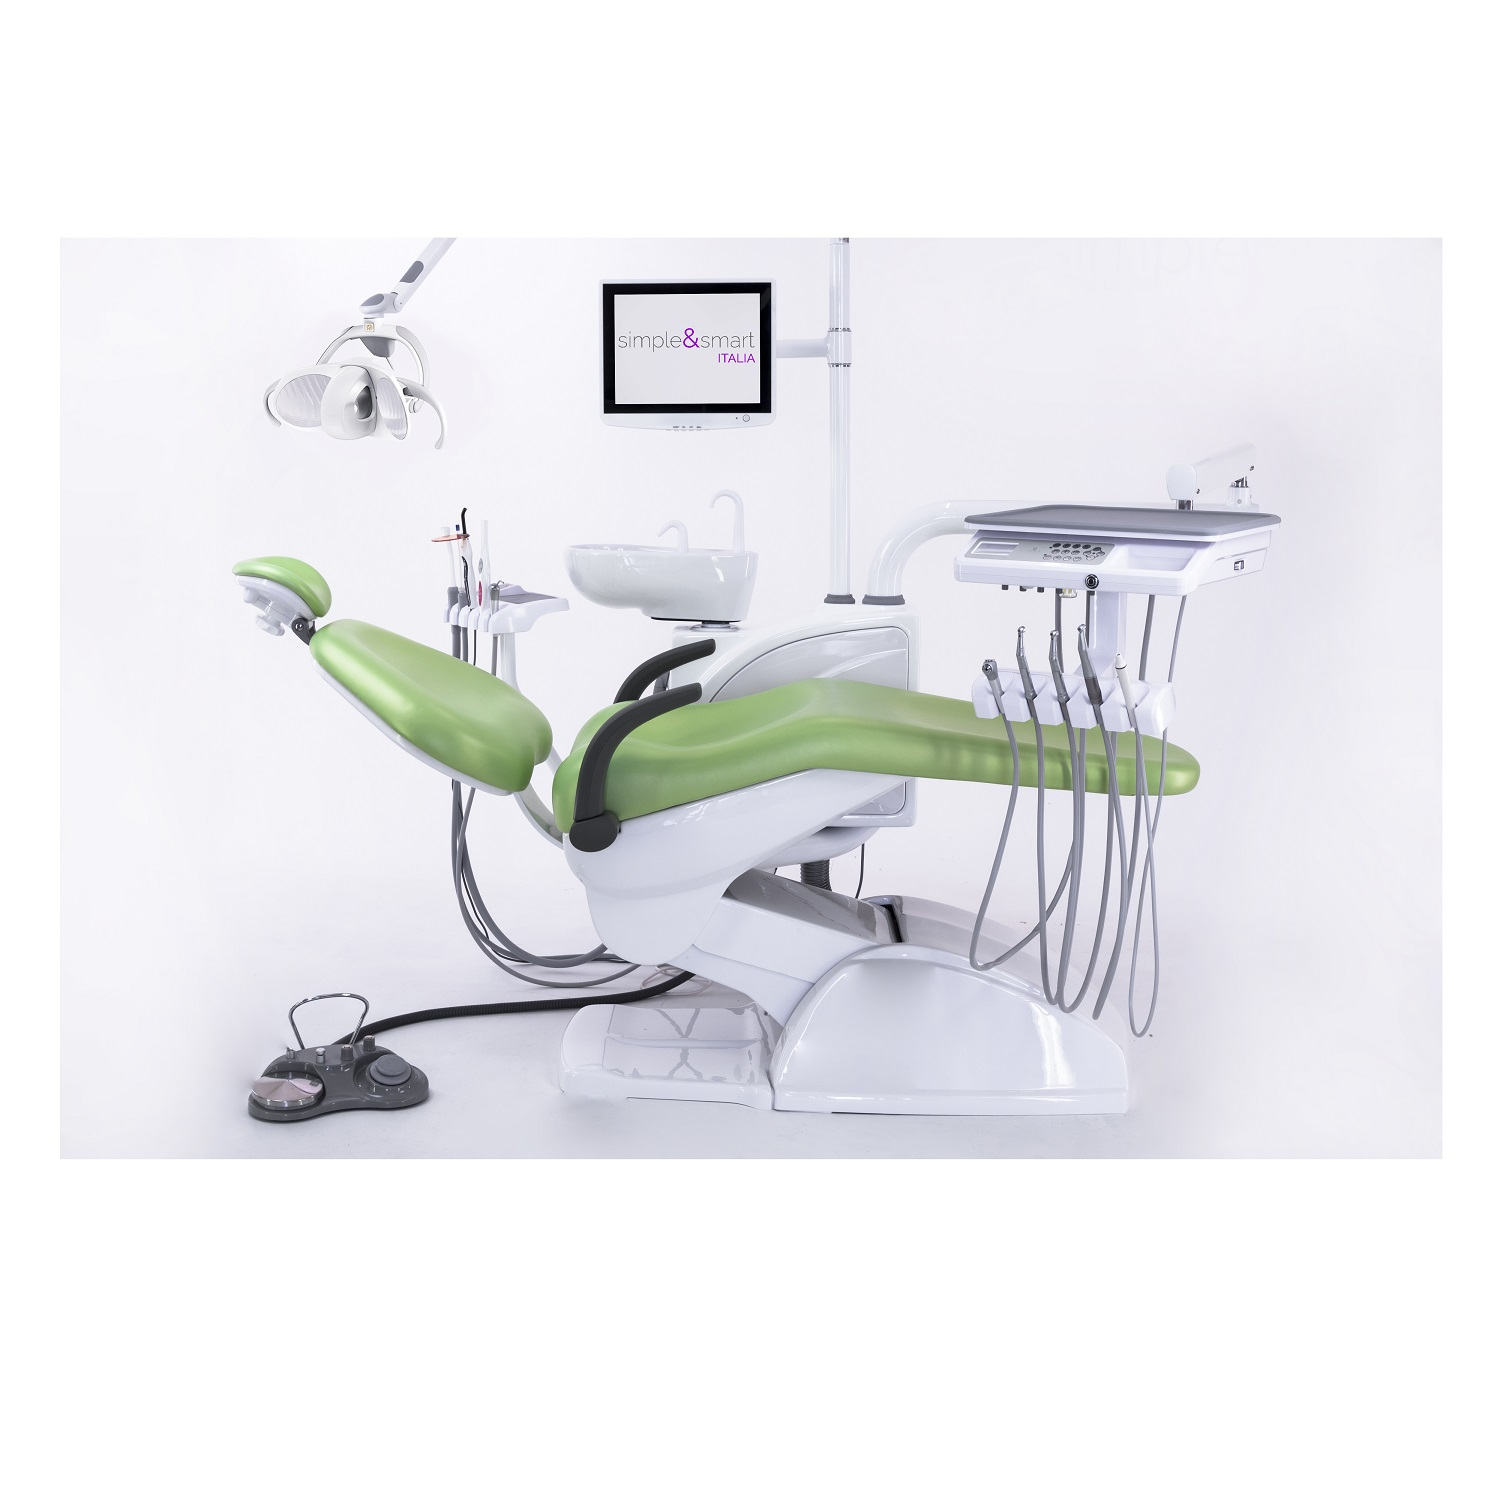 Buy SS e LED Dental Chair from Dental Engineers